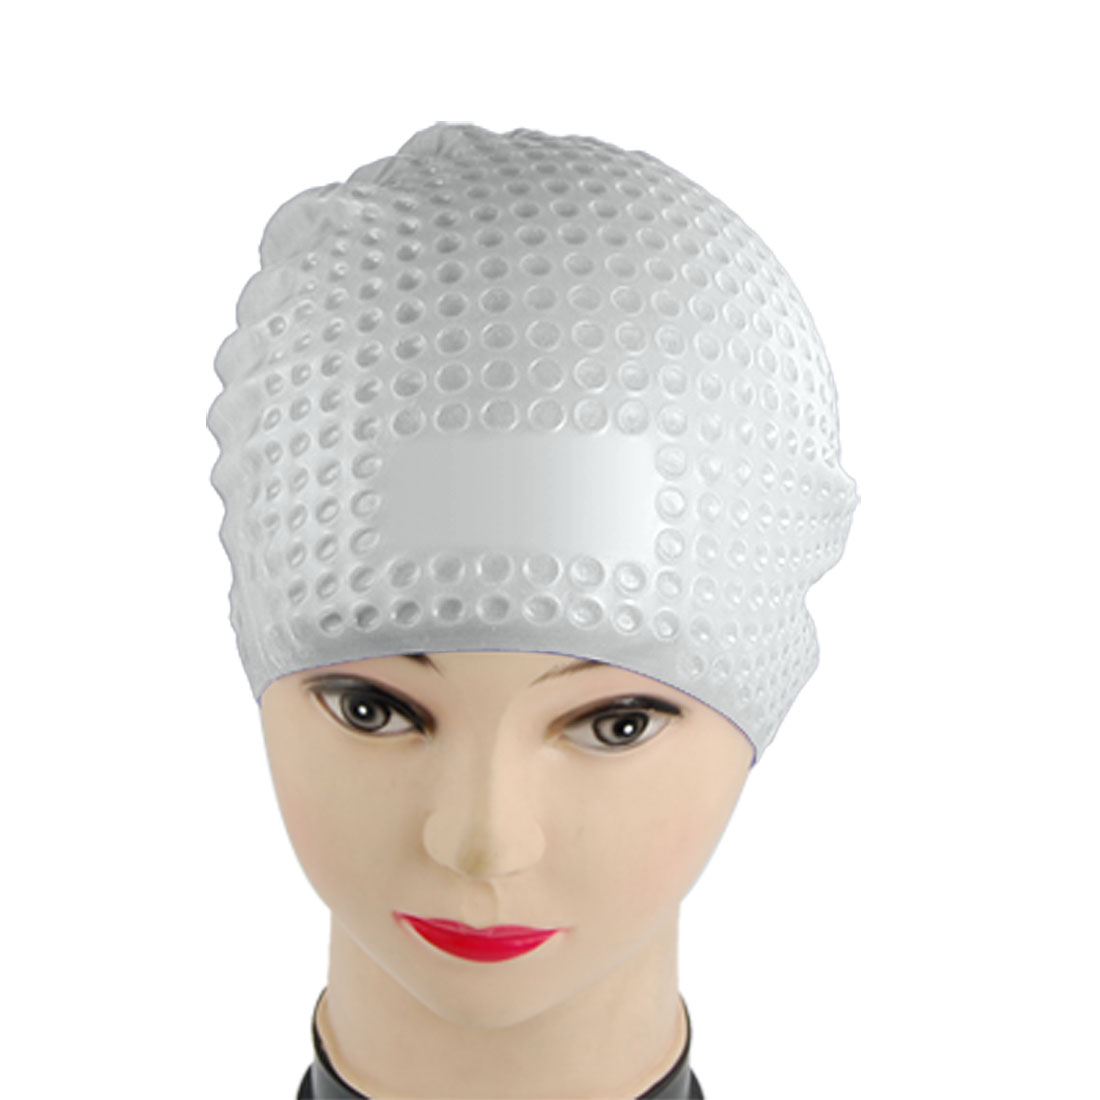 Light Gray Elastic Textured Silicone Swimming Cap for Adult